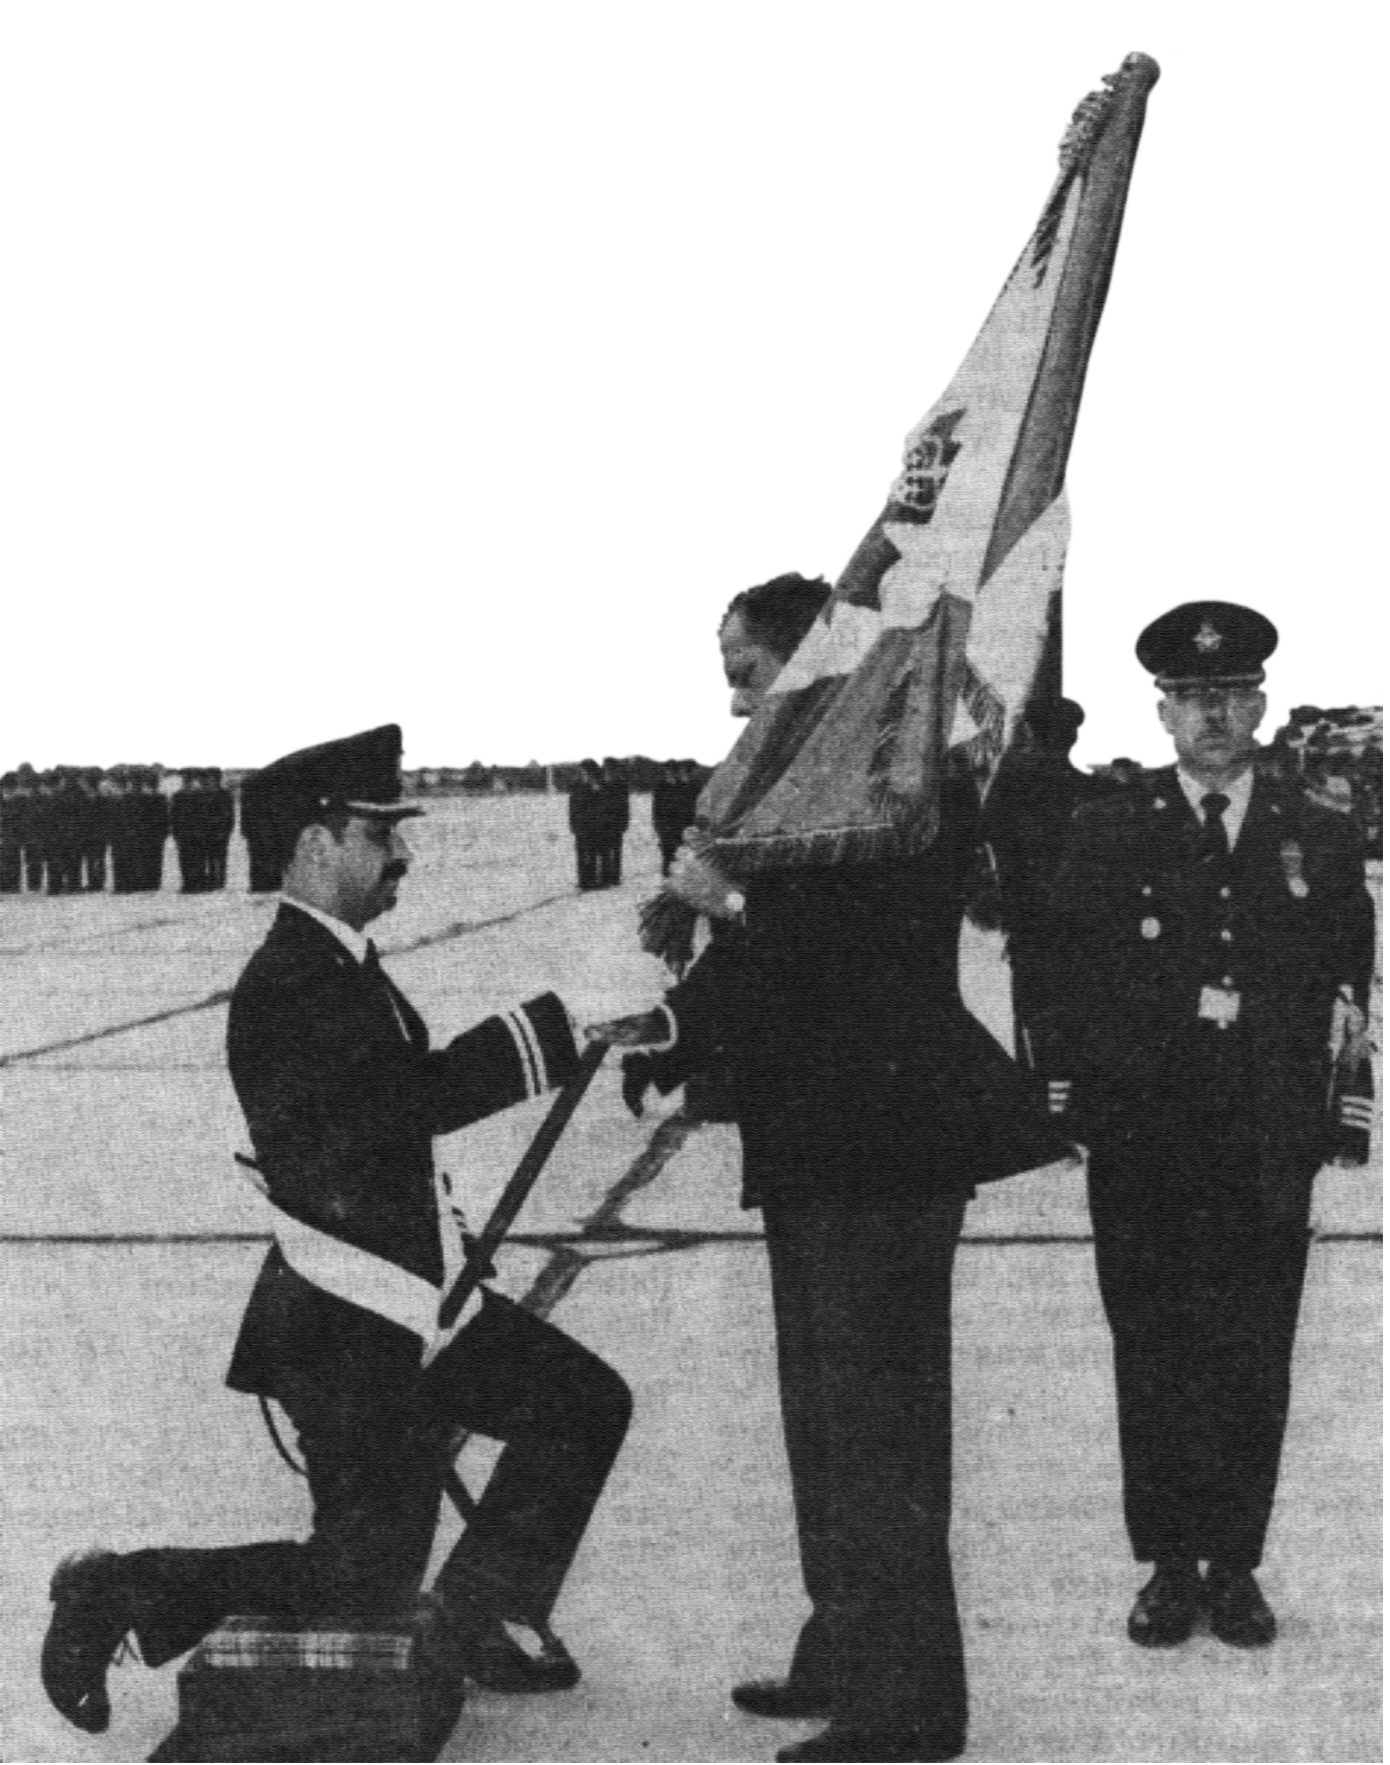 Following the unification of the Canadian Armed Forces, the Air Force received its second stand of Colours, reflecting its identity as Air Command, on July 31, 1982, in Winnipeg, Manitoba. Here, Governor General Ed Schreyer presents the Queen's Colour.